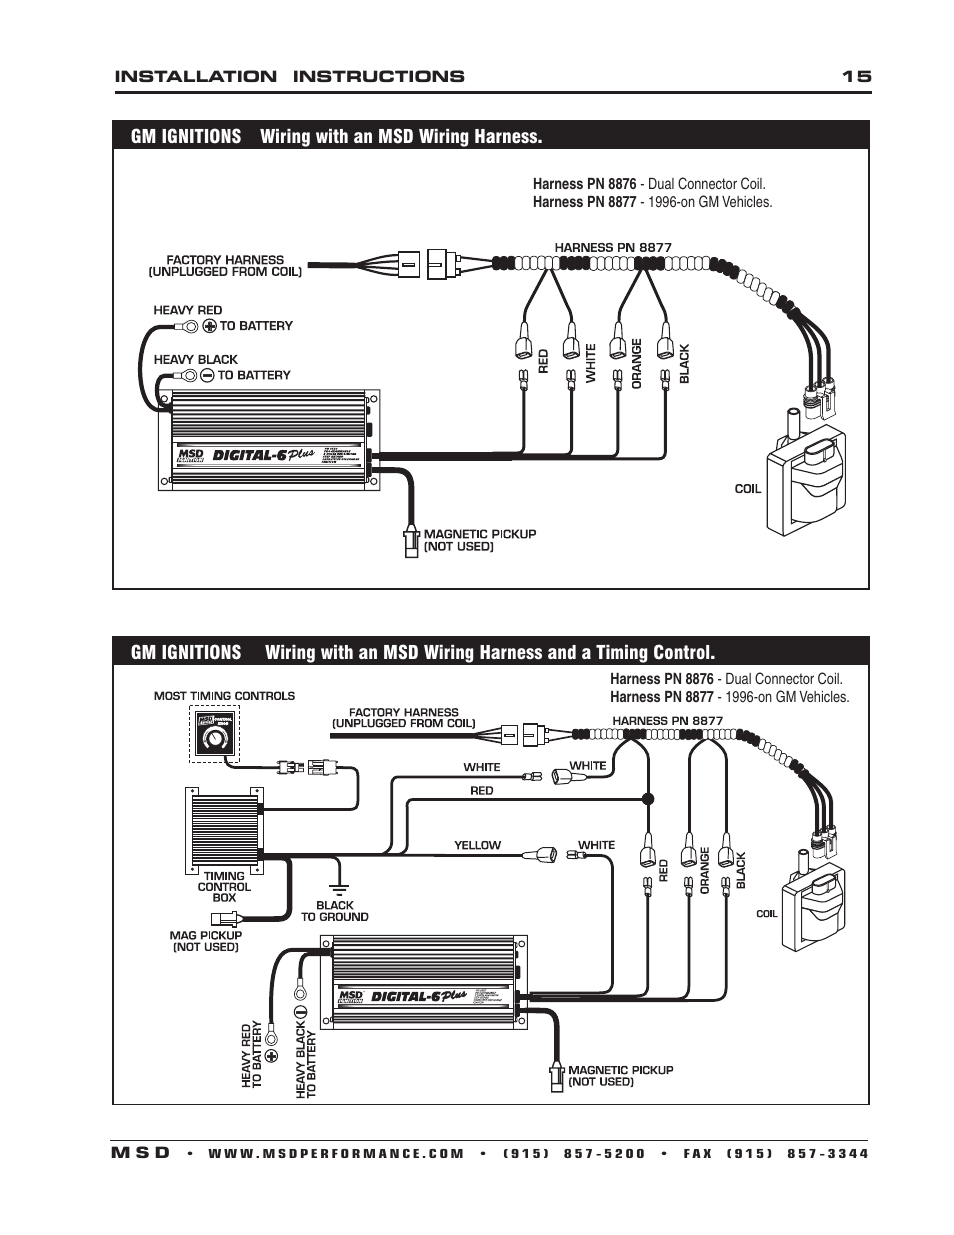 Msd 8860 Wiring Harness Manual Guide Diagram Distributor 18 Images Diagrams Honlapkeszites Co 6625